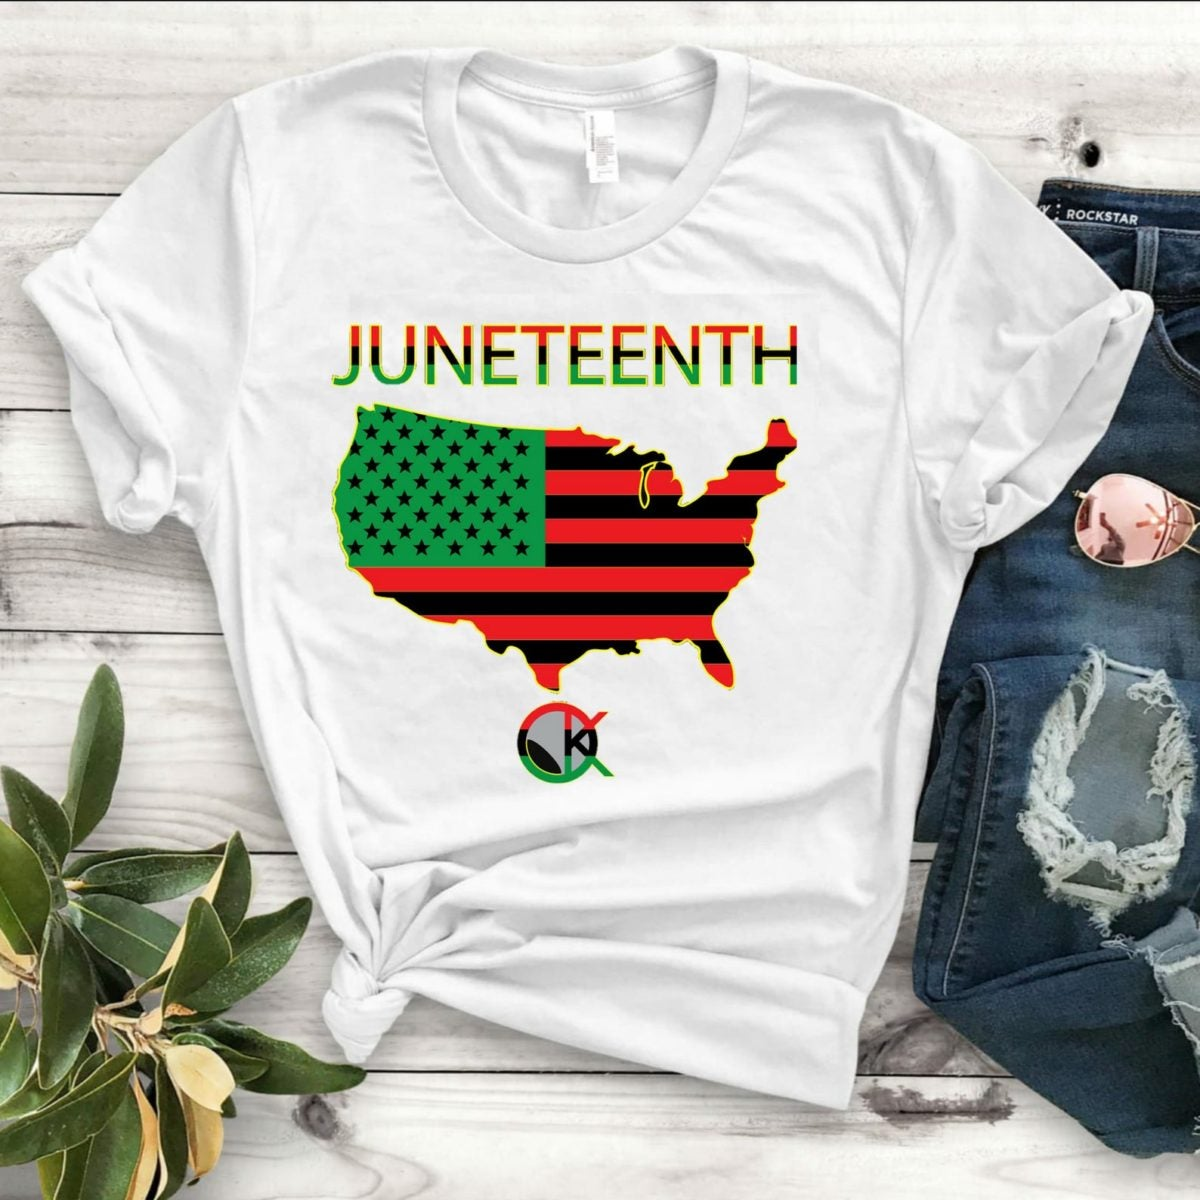 It's Juneteenth! Here Are The T-Shirts You Need to Celebrate Our Freedom In Style